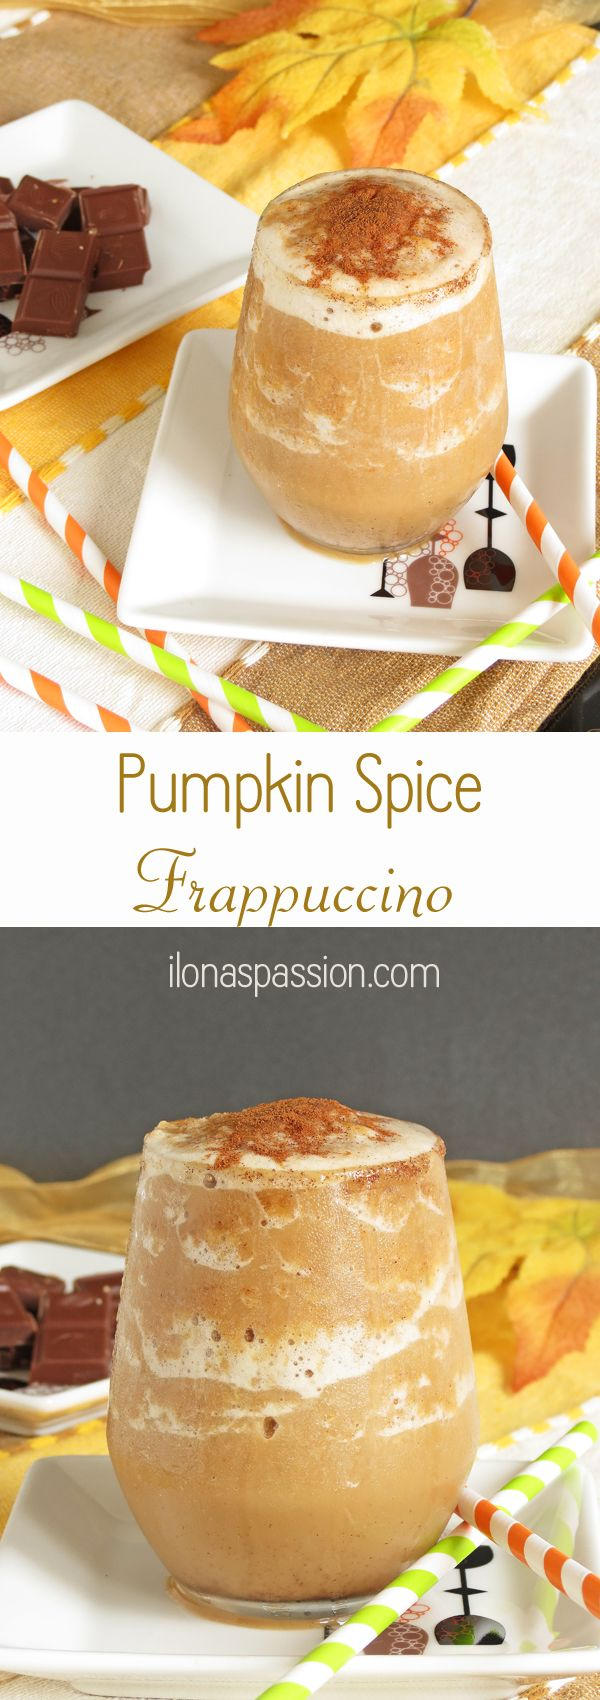 Vegan and Skinny Pumpkin Spice Frappuccino by ilonaspassion.com #frappuccino #pumpkin #spice #autumn #coffee